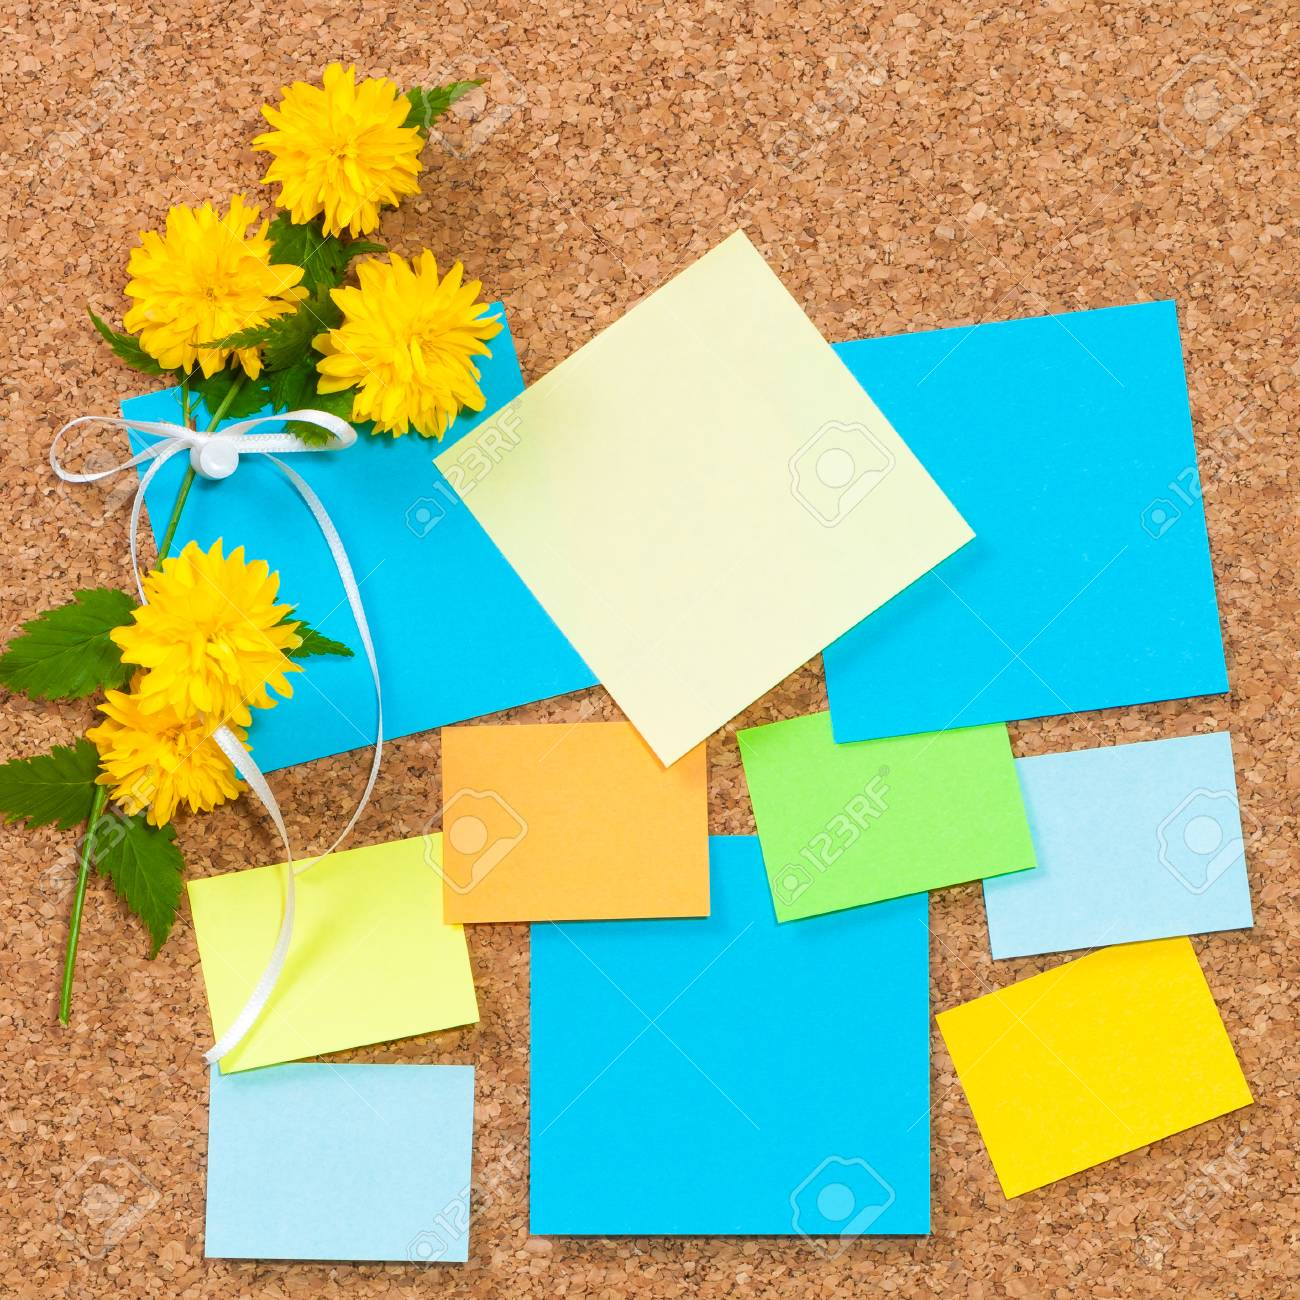 sticky notes in different